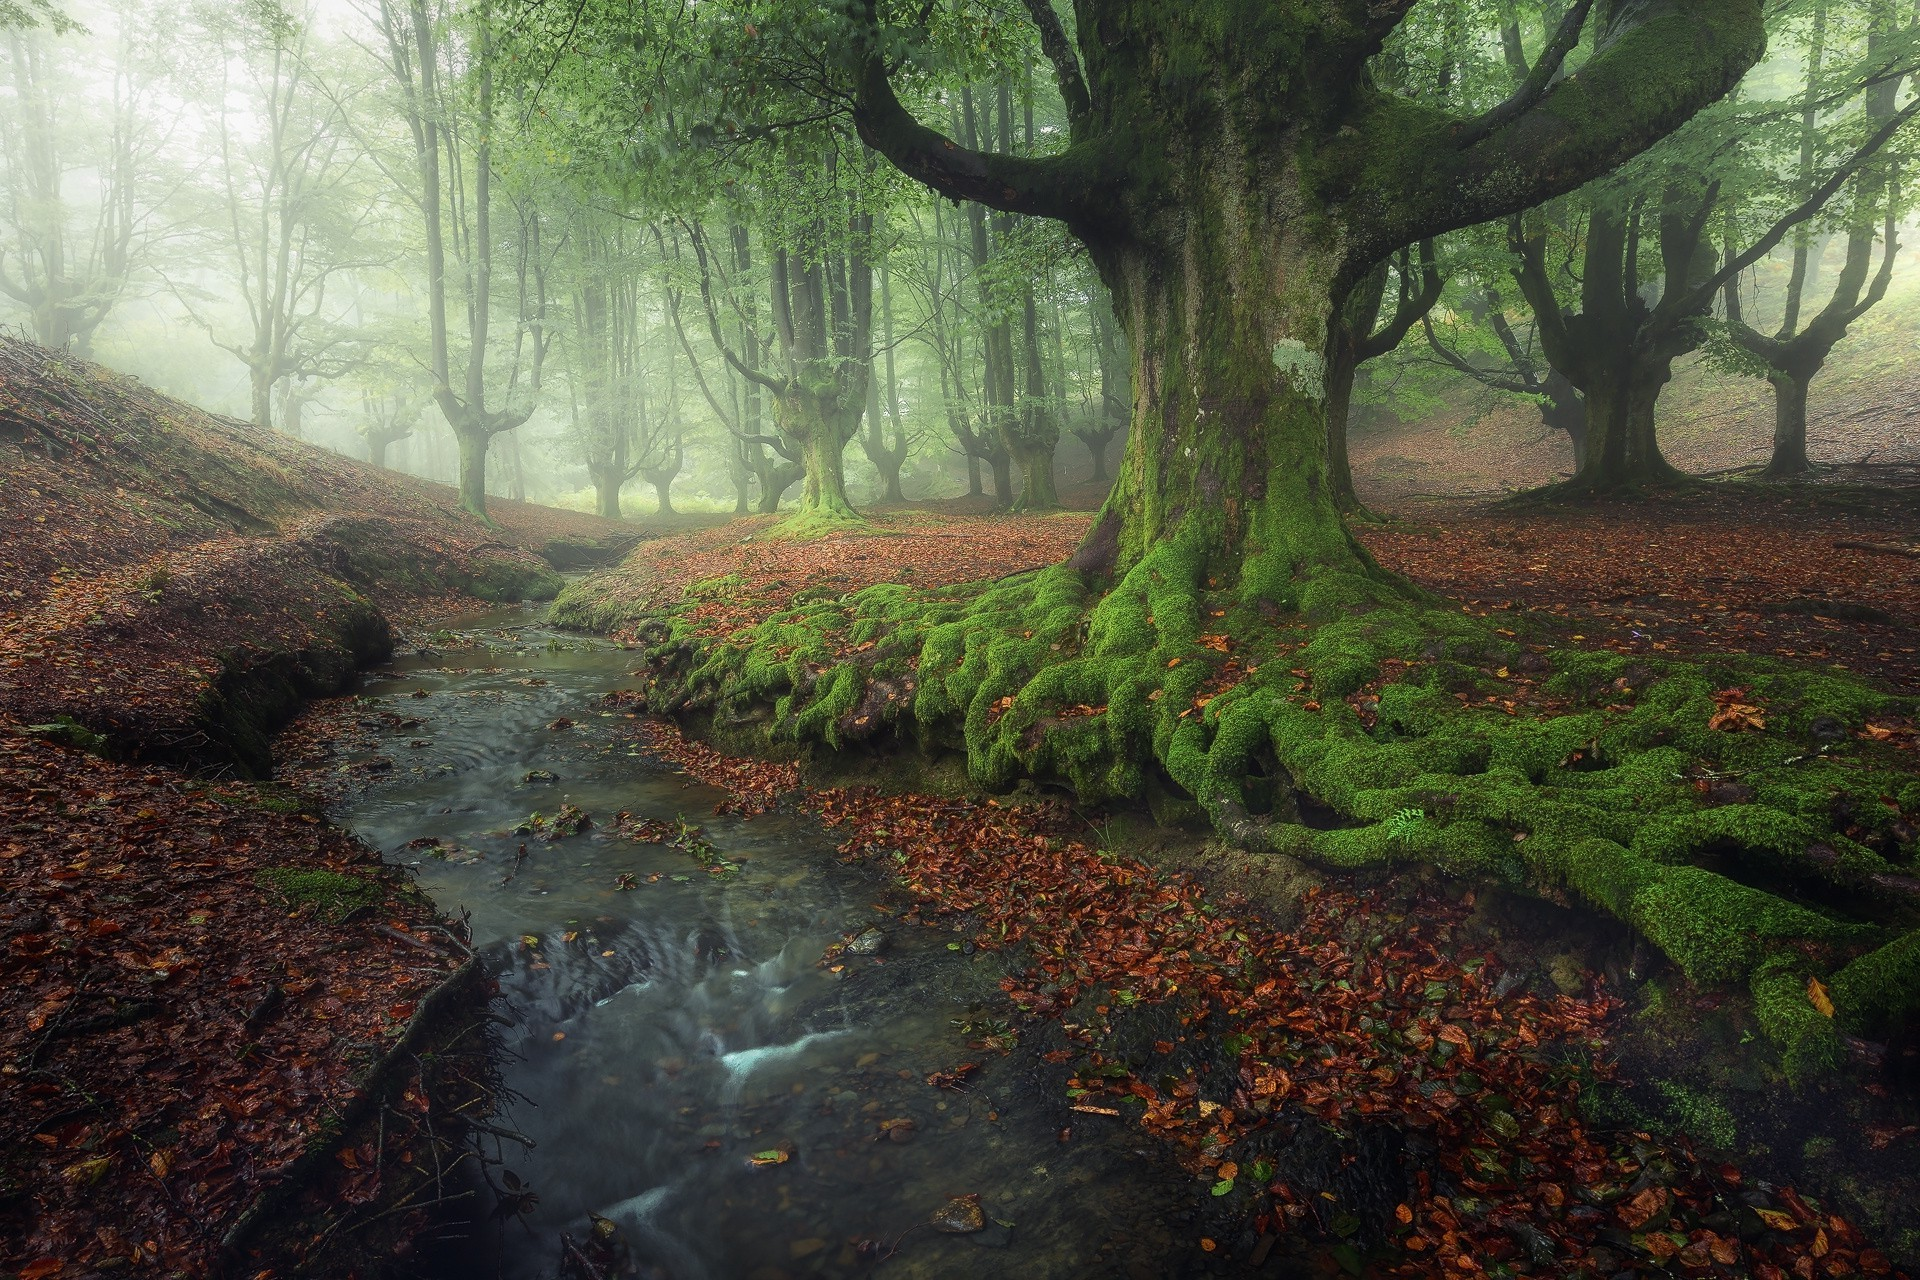 Full Screen Desktop Fall Leaves Wallpaper Nature Landscape Forest Creeks Sunrise Mist Moss